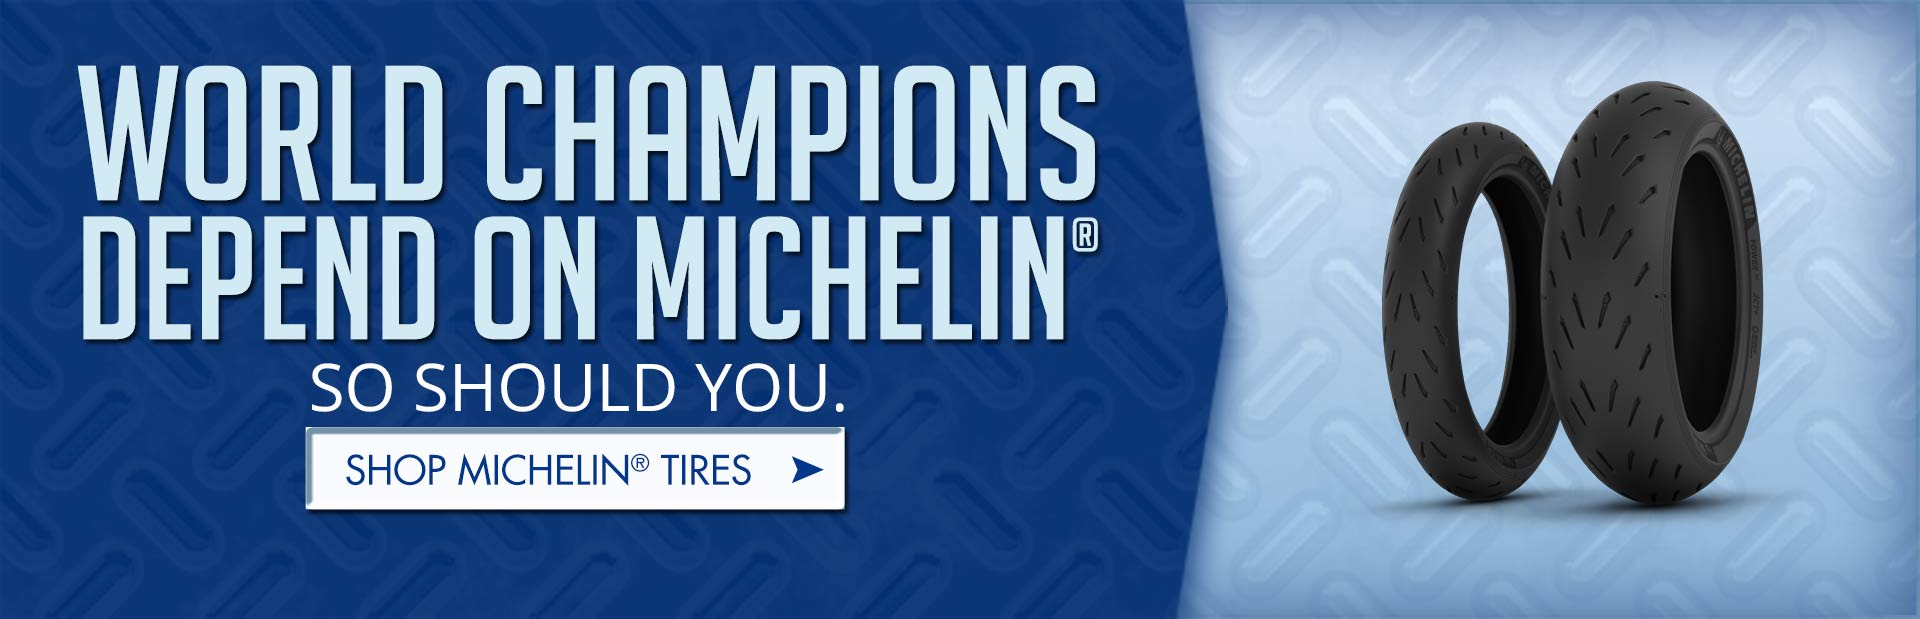 World champions depend on Michelin®. So should you. Click here to shop for Michelin® tires.